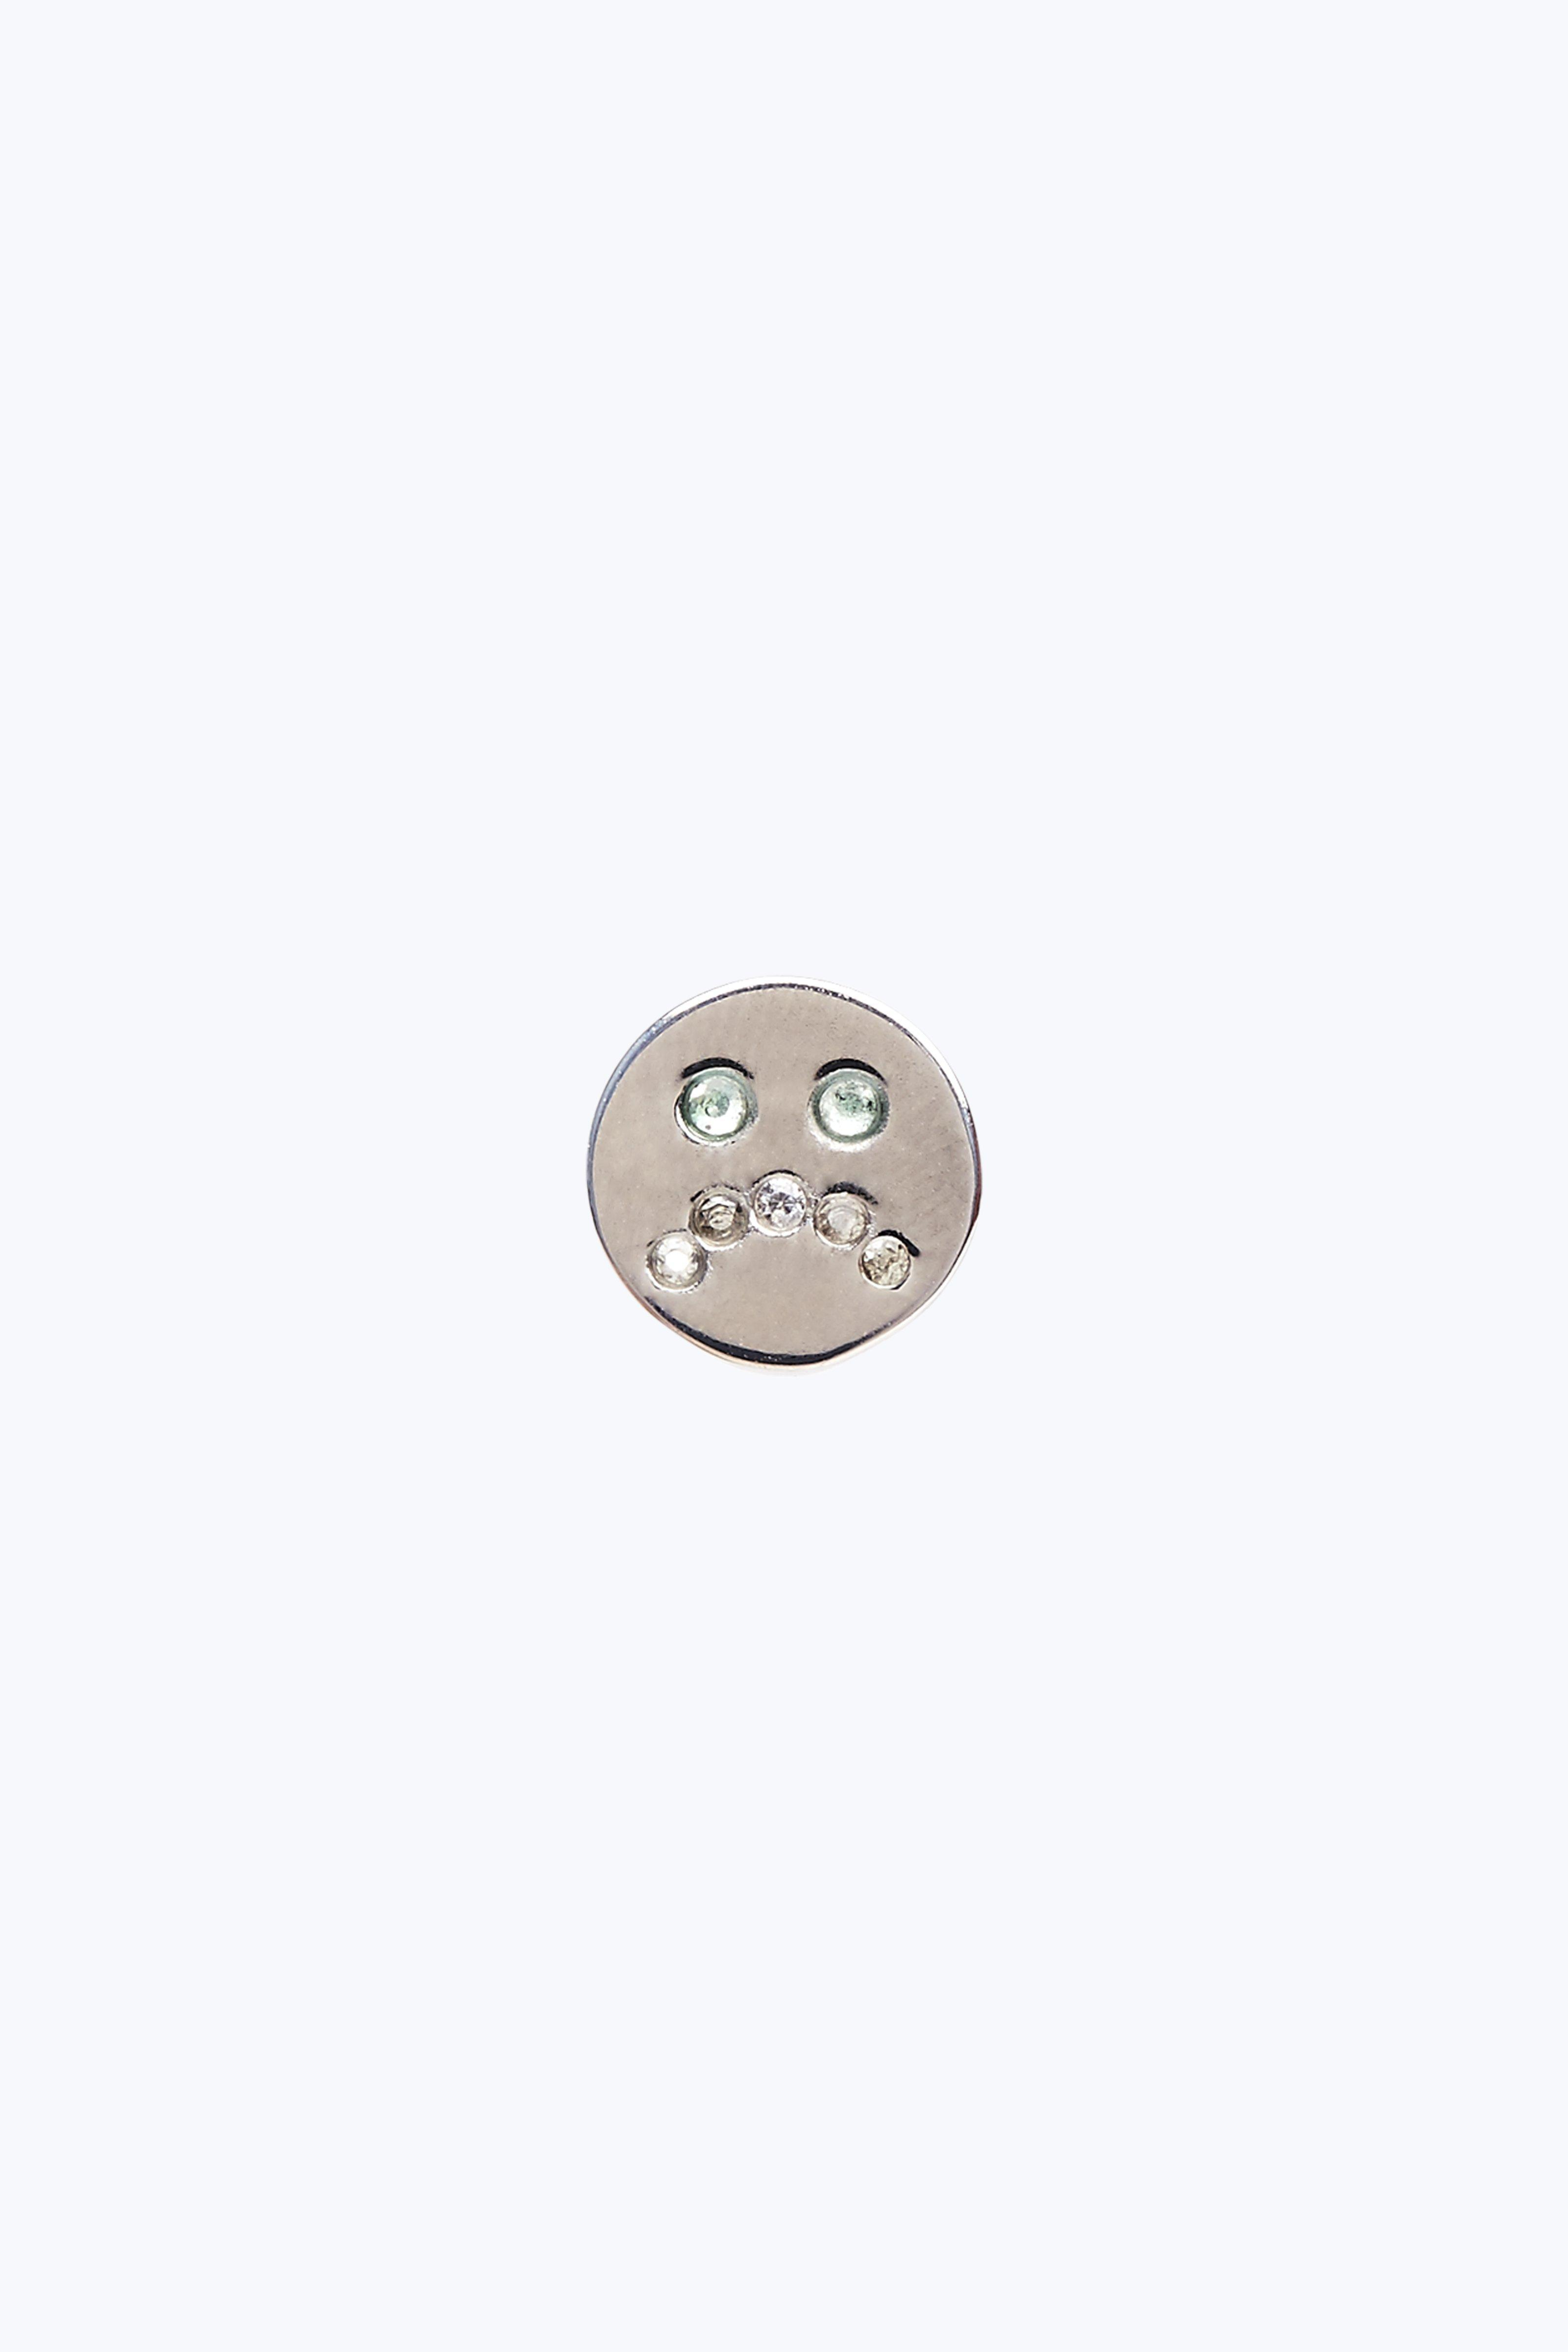 Marc Jacobs Sad Face Single Stud In Silver